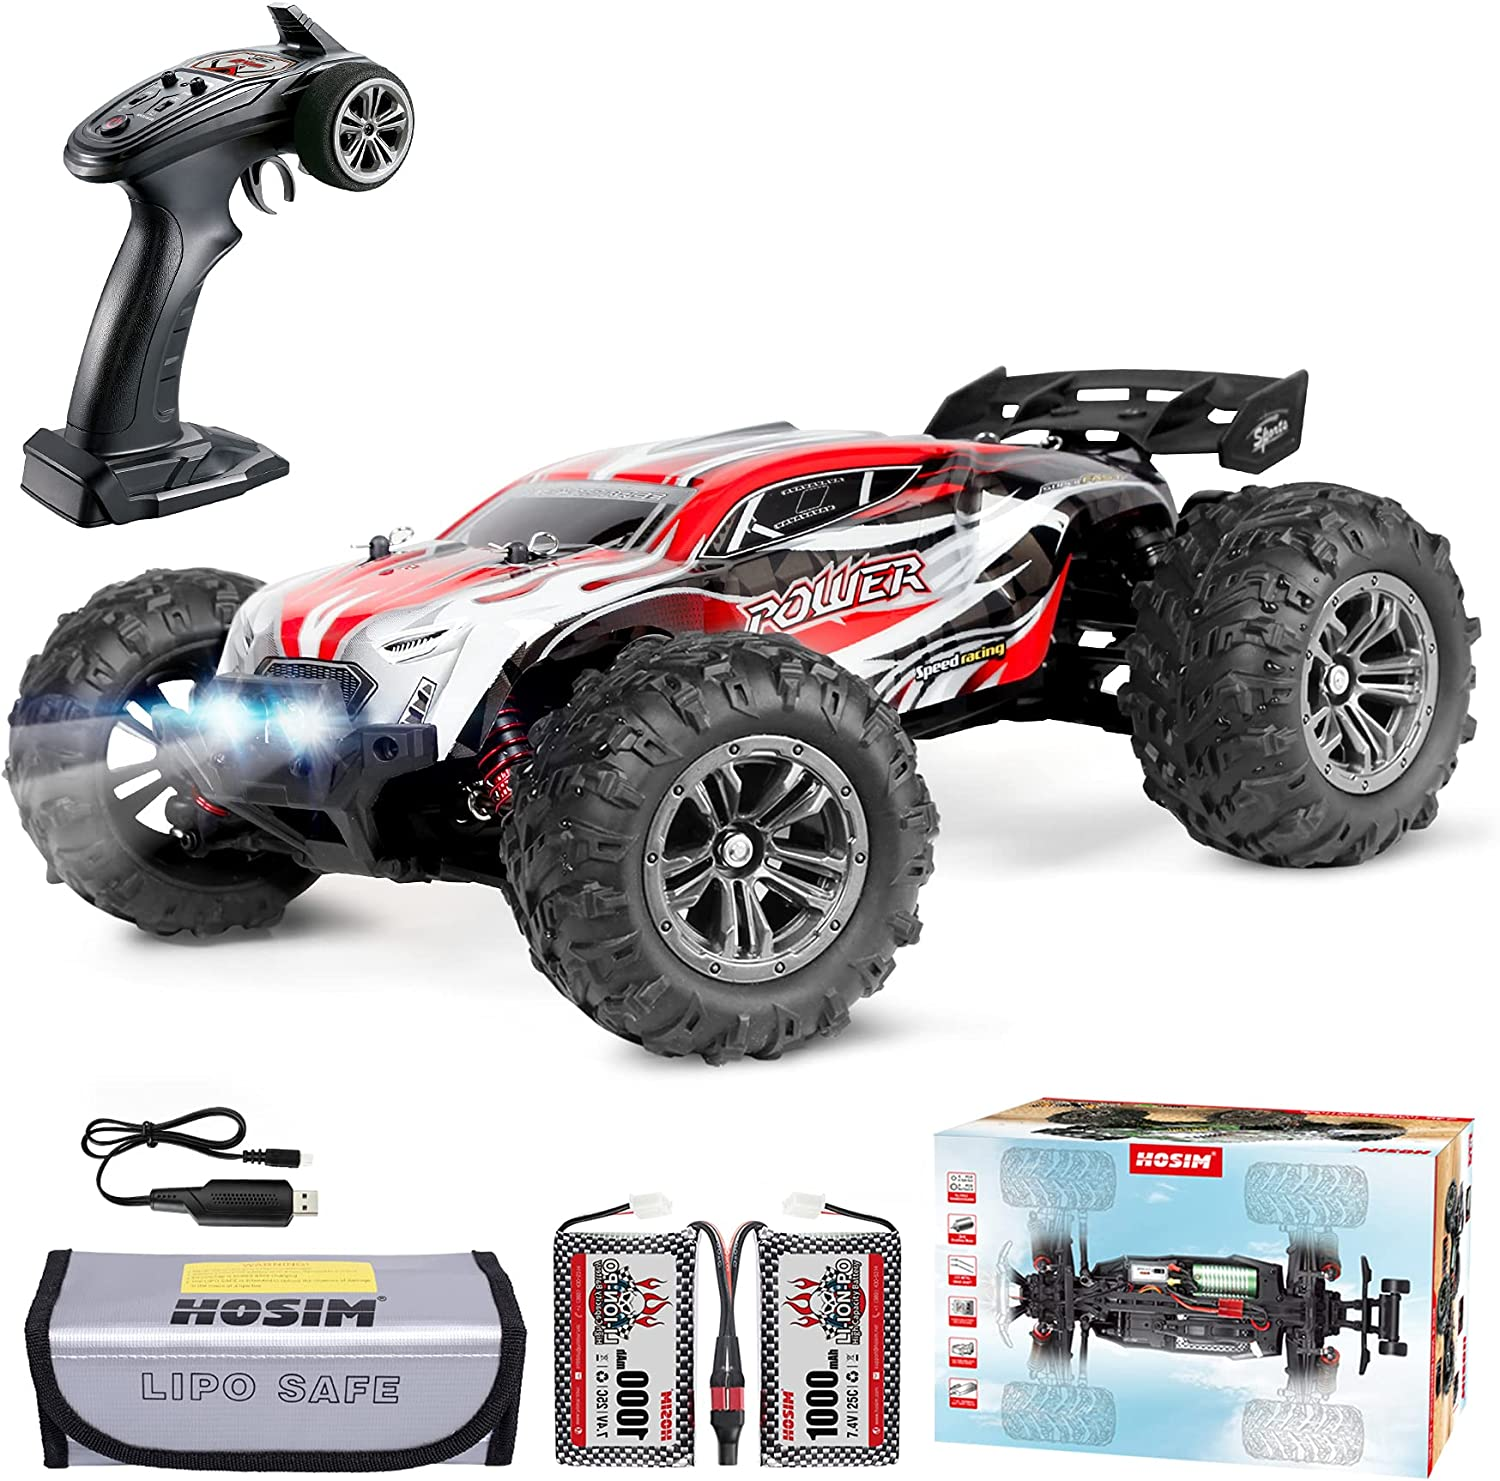 Hosim 52+ KMH 2845 Brushless Direct sale of manufacturer RC Cars Finally popular brand Remot 1:16 Large Size Scale